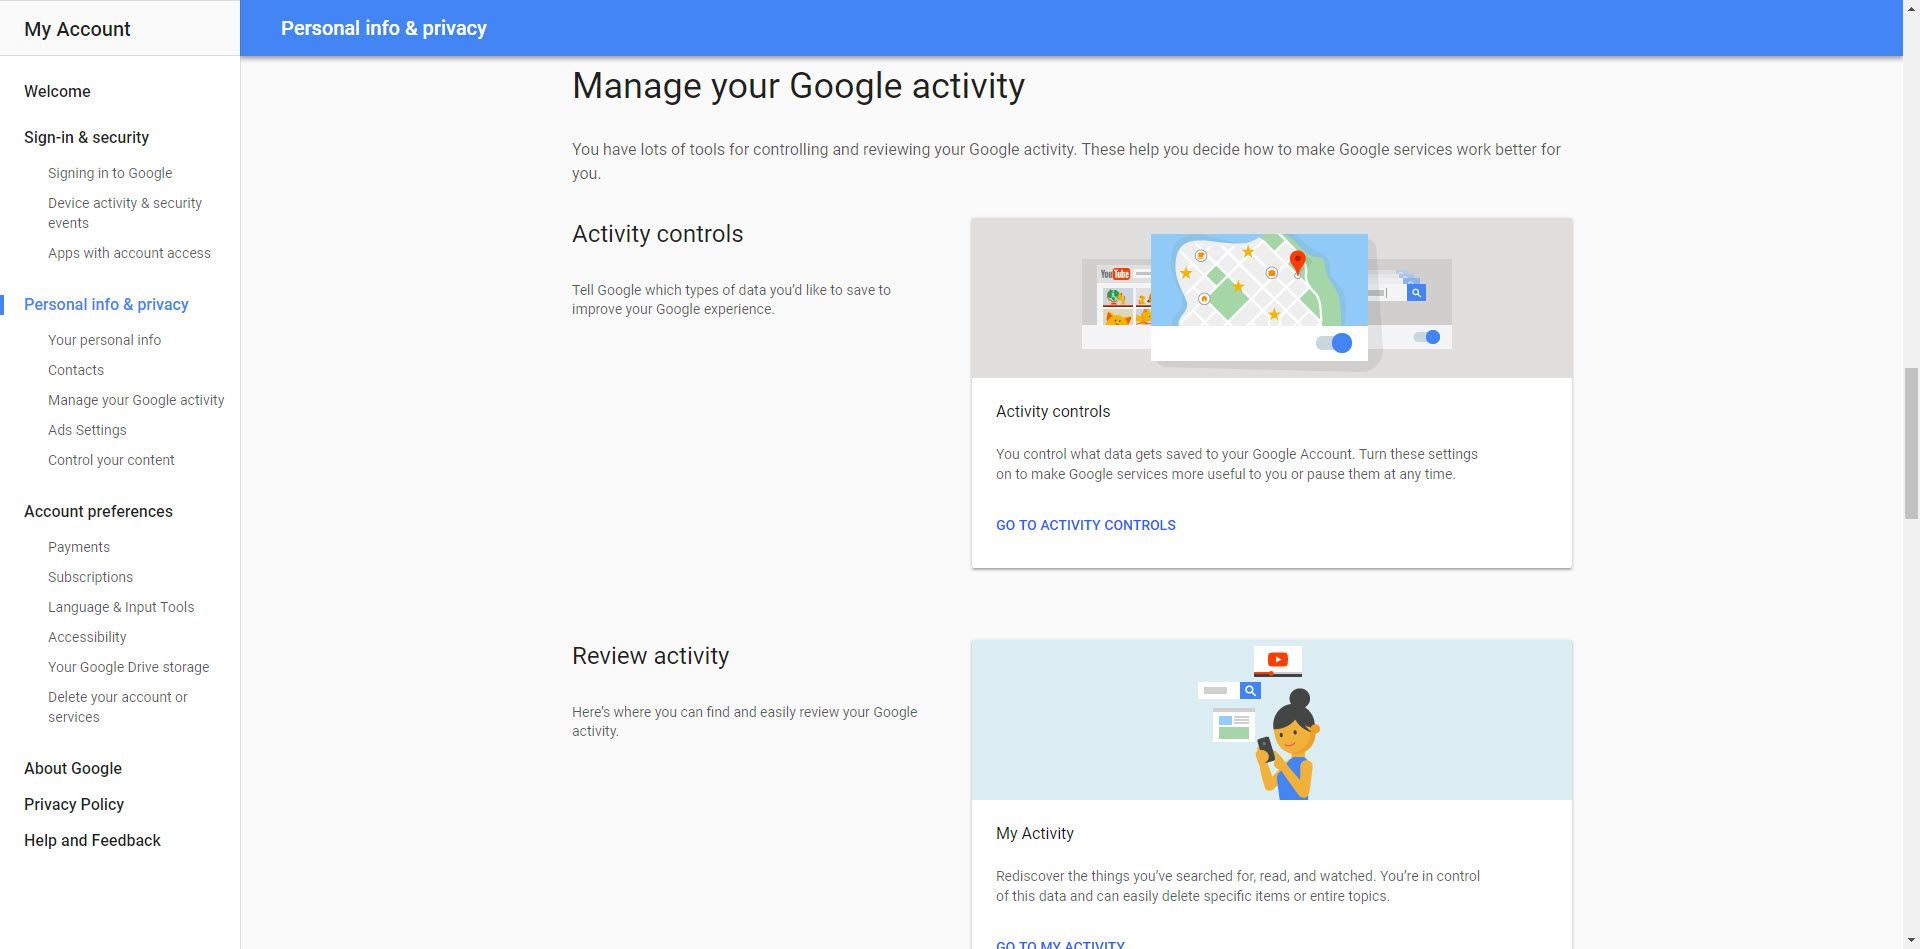 Screenshot of the Google Activity Settings that users can change and control to protect their privacy.